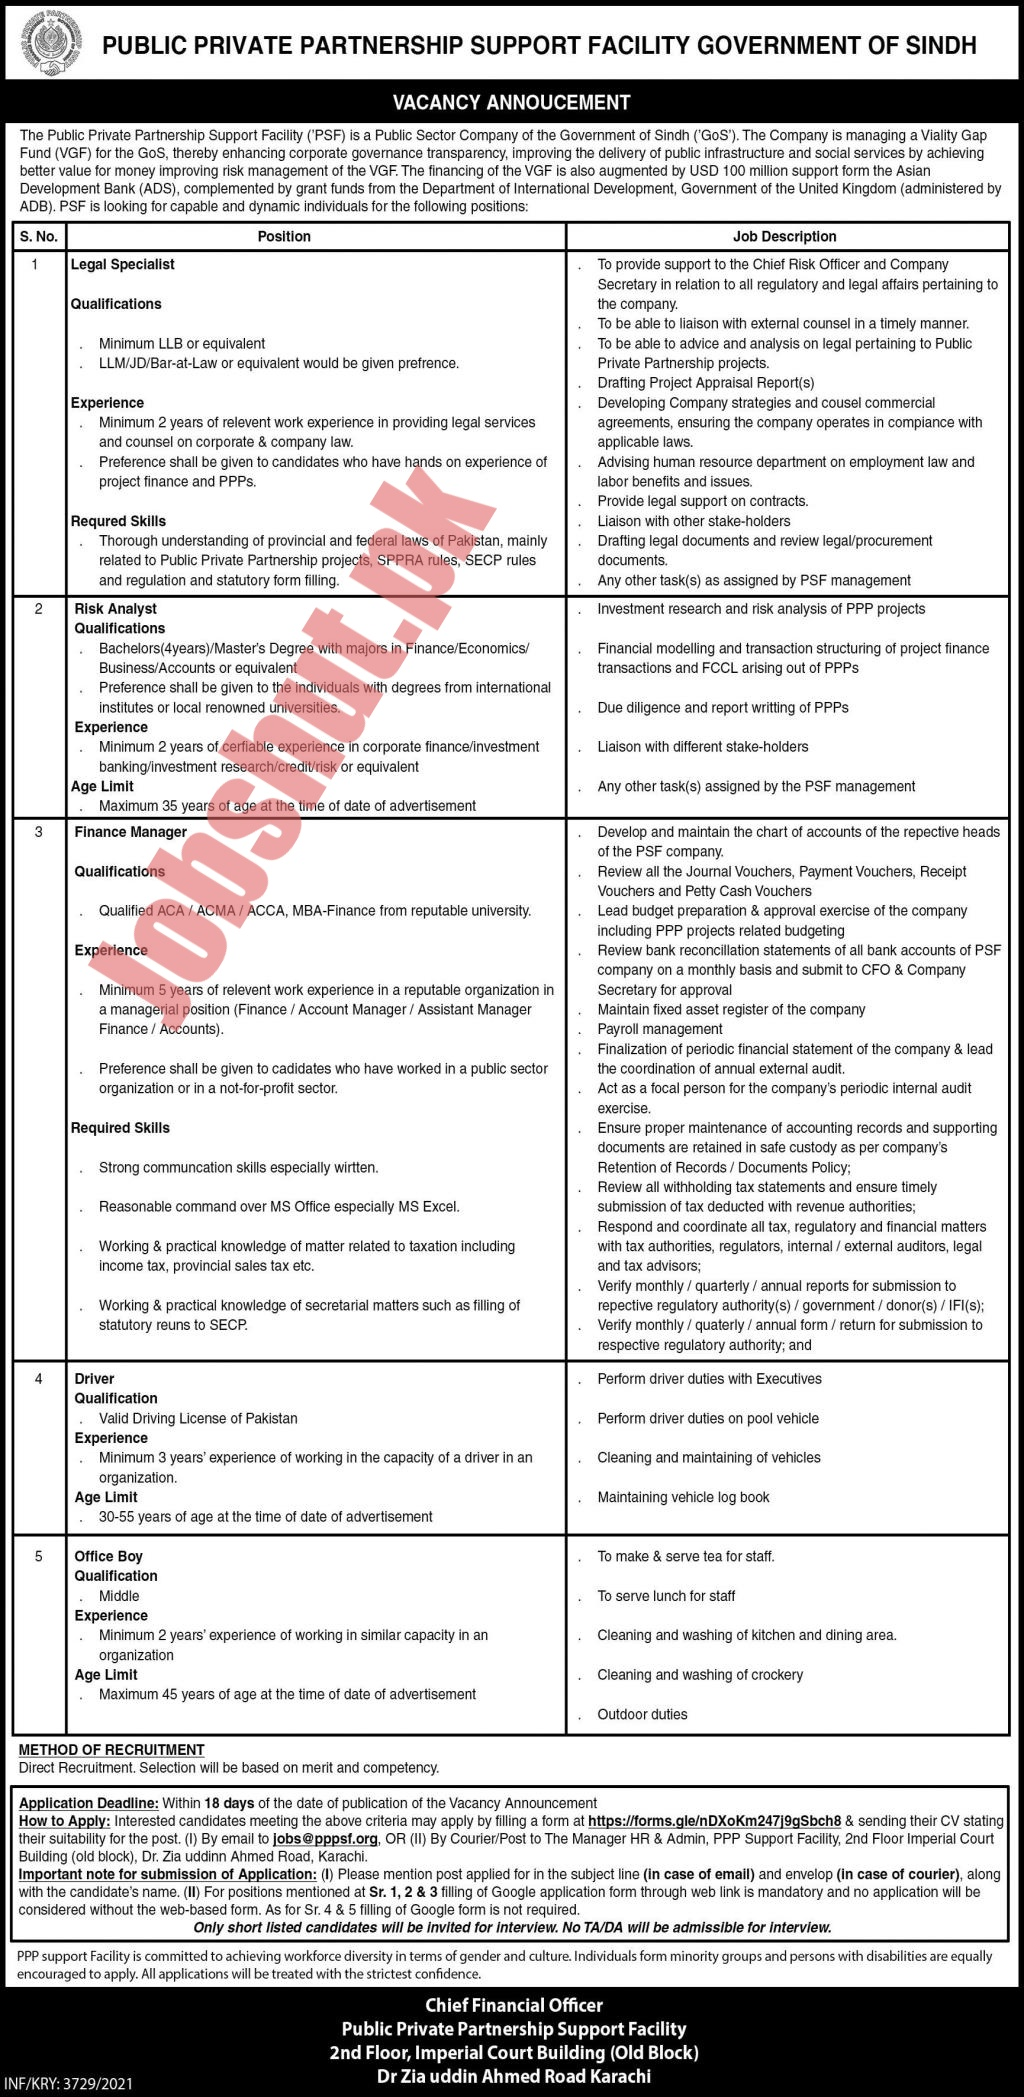 Sindh Public Private Partnership Support Facility PPPSF jobs advertisement